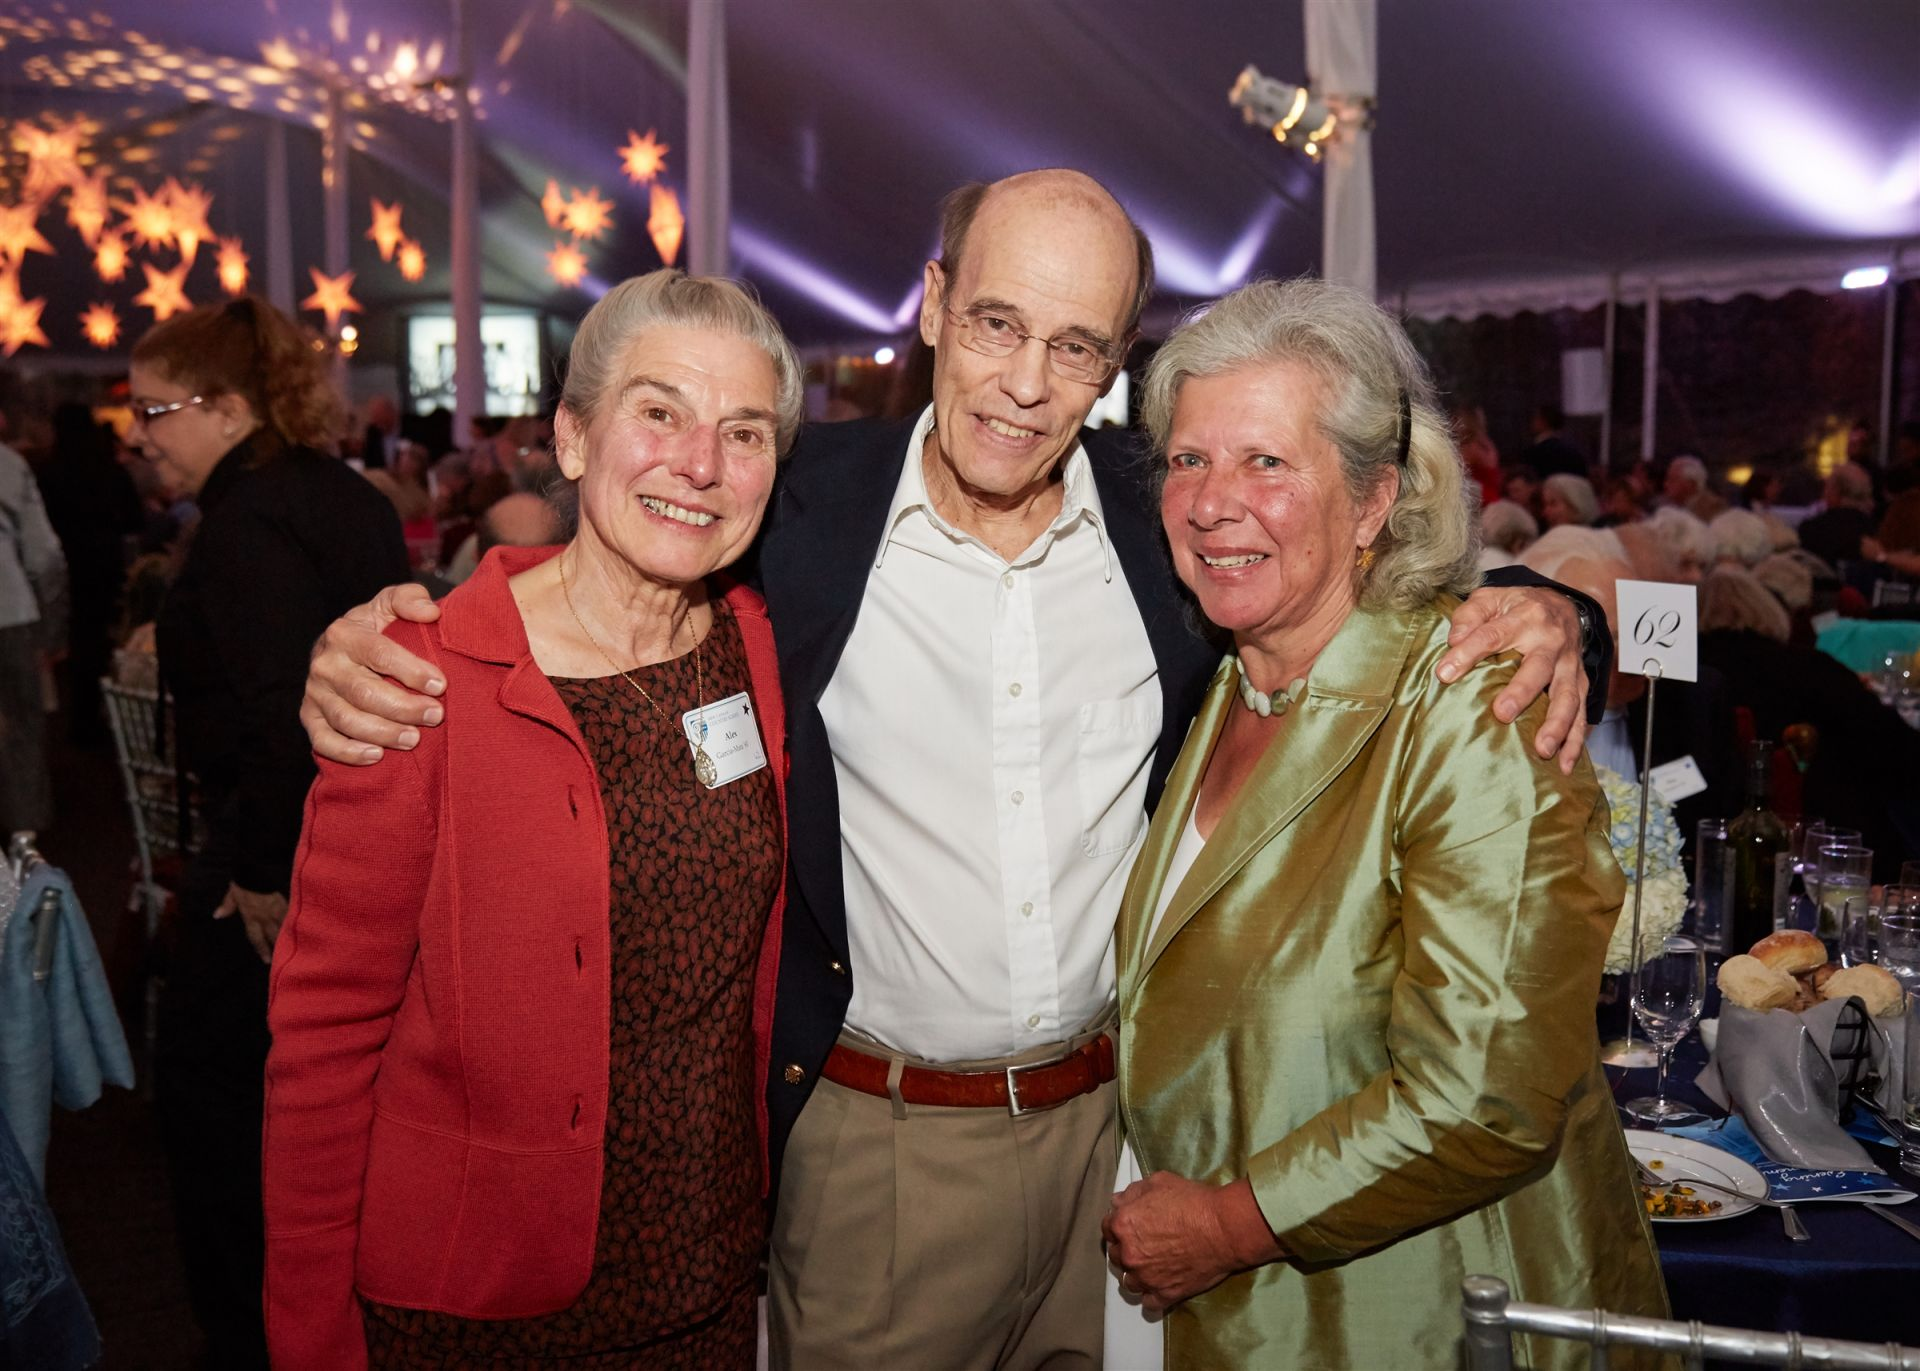 Centennial Celebration Weekend: Alex Garcia-Mata '61, David Gens '61, Sue II Knowles '61